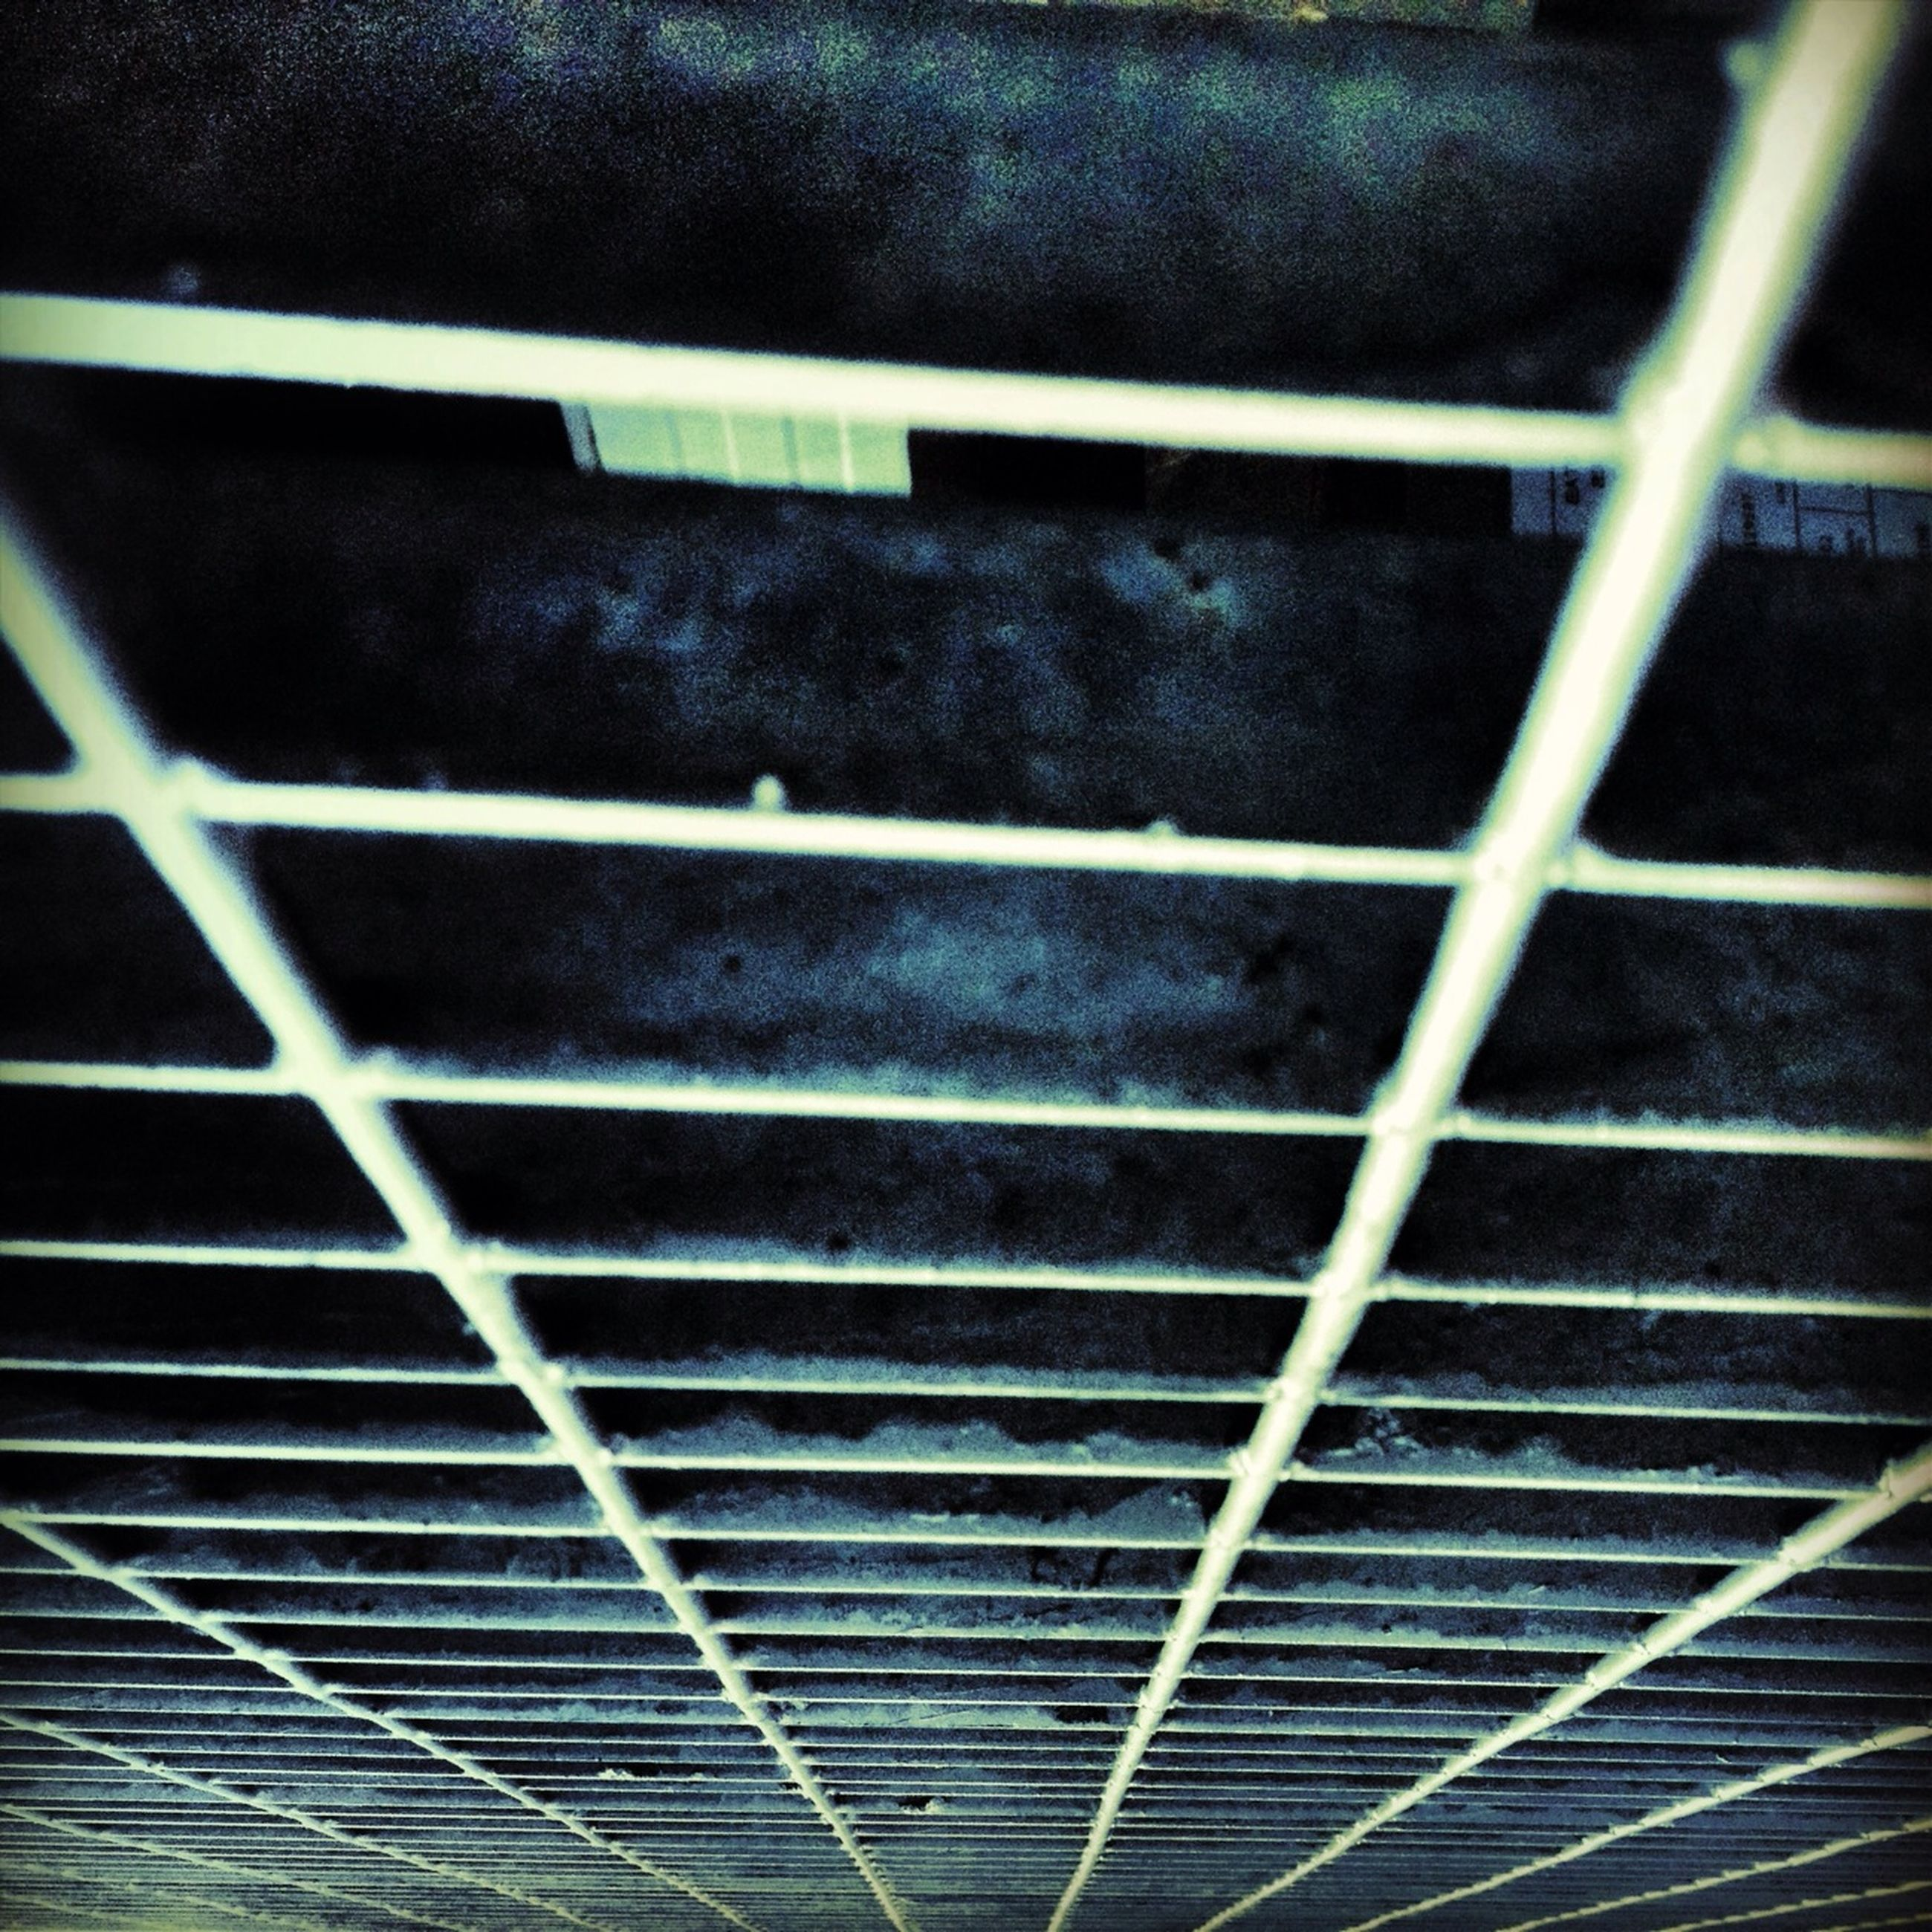 pattern, backgrounds, full frame, textured, repetition, metal, design, no people, abstract, built structure, low angle view, indoors, in a row, geometric shape, metallic, ceiling, close-up, shape, detail